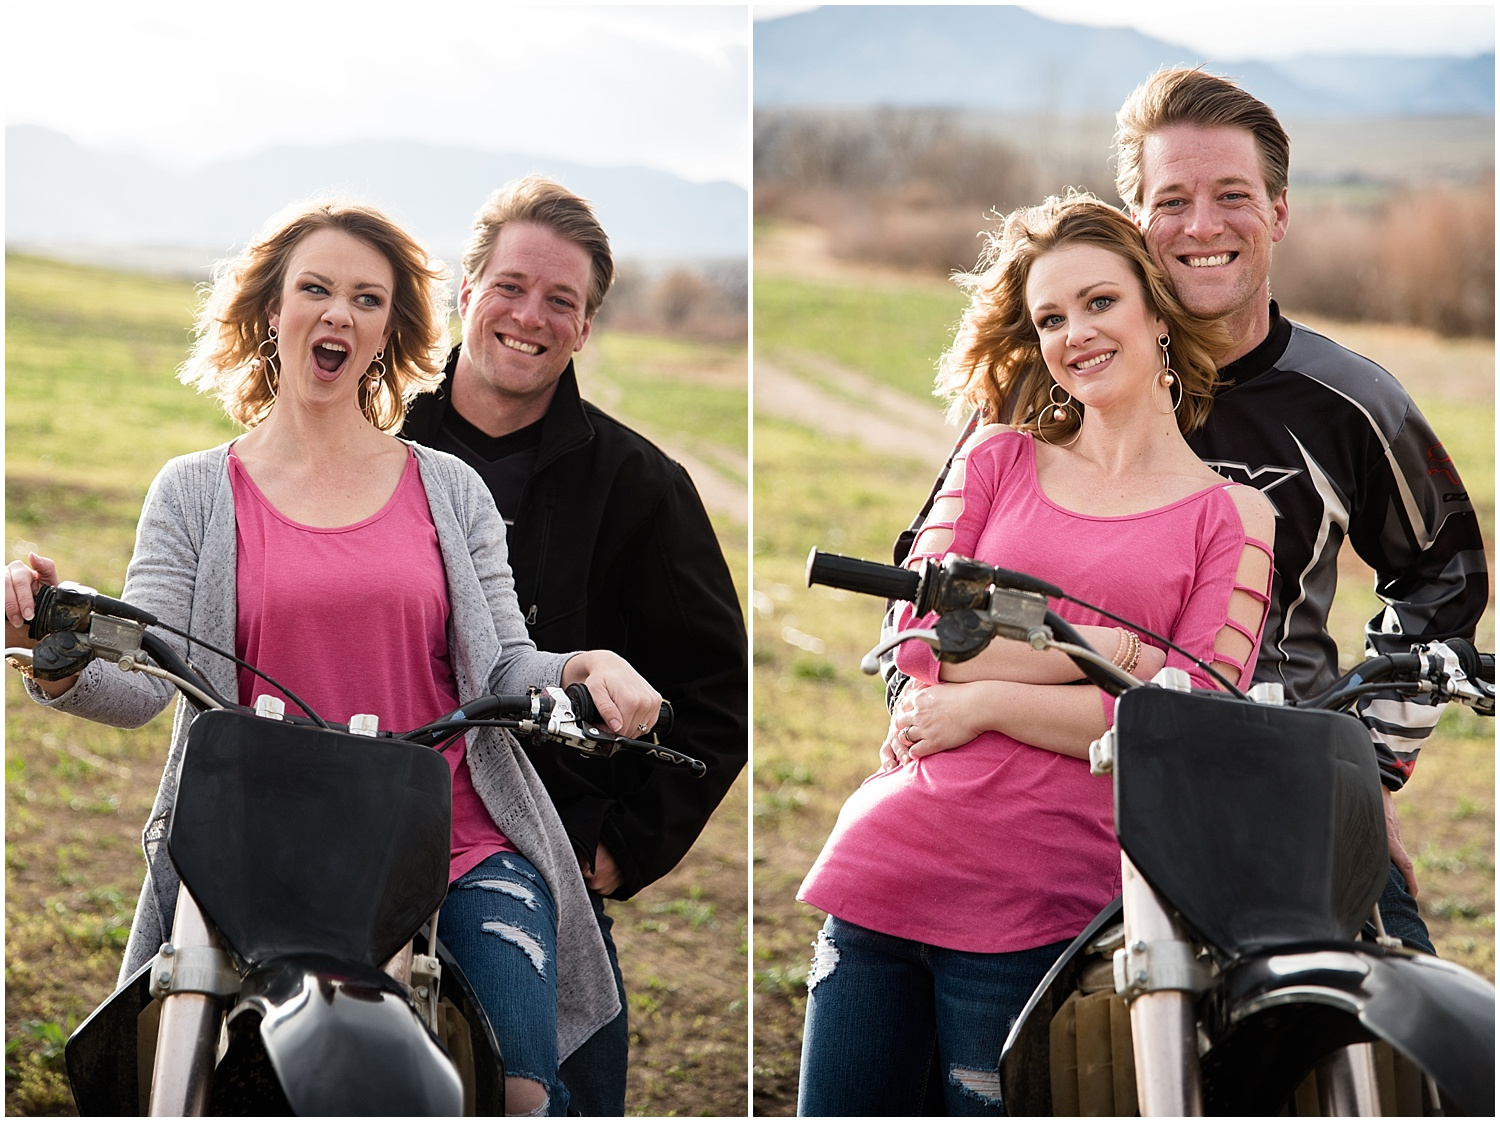 Man & Woman on Dirt Bikes | Dirt Bike Engagement Session | Colorado Adventure Engagement Photographer | Rocky Mountain Elopement Photography | Farm Wedding Photographer | Apollo Fields Photojournalism